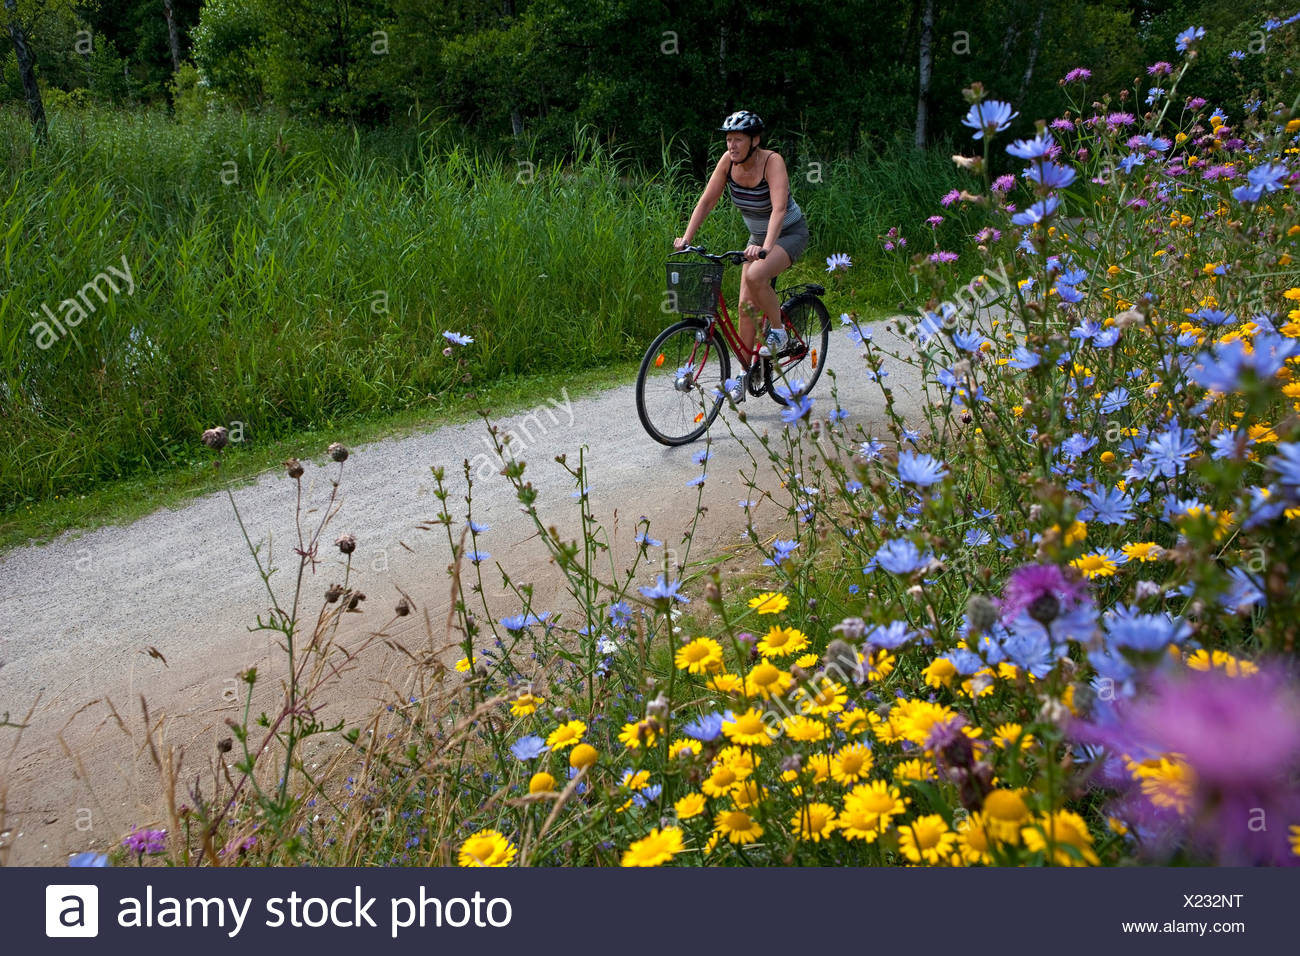 Female cyclist on the country road in summer landscape with flowers in foreground Stock Photo